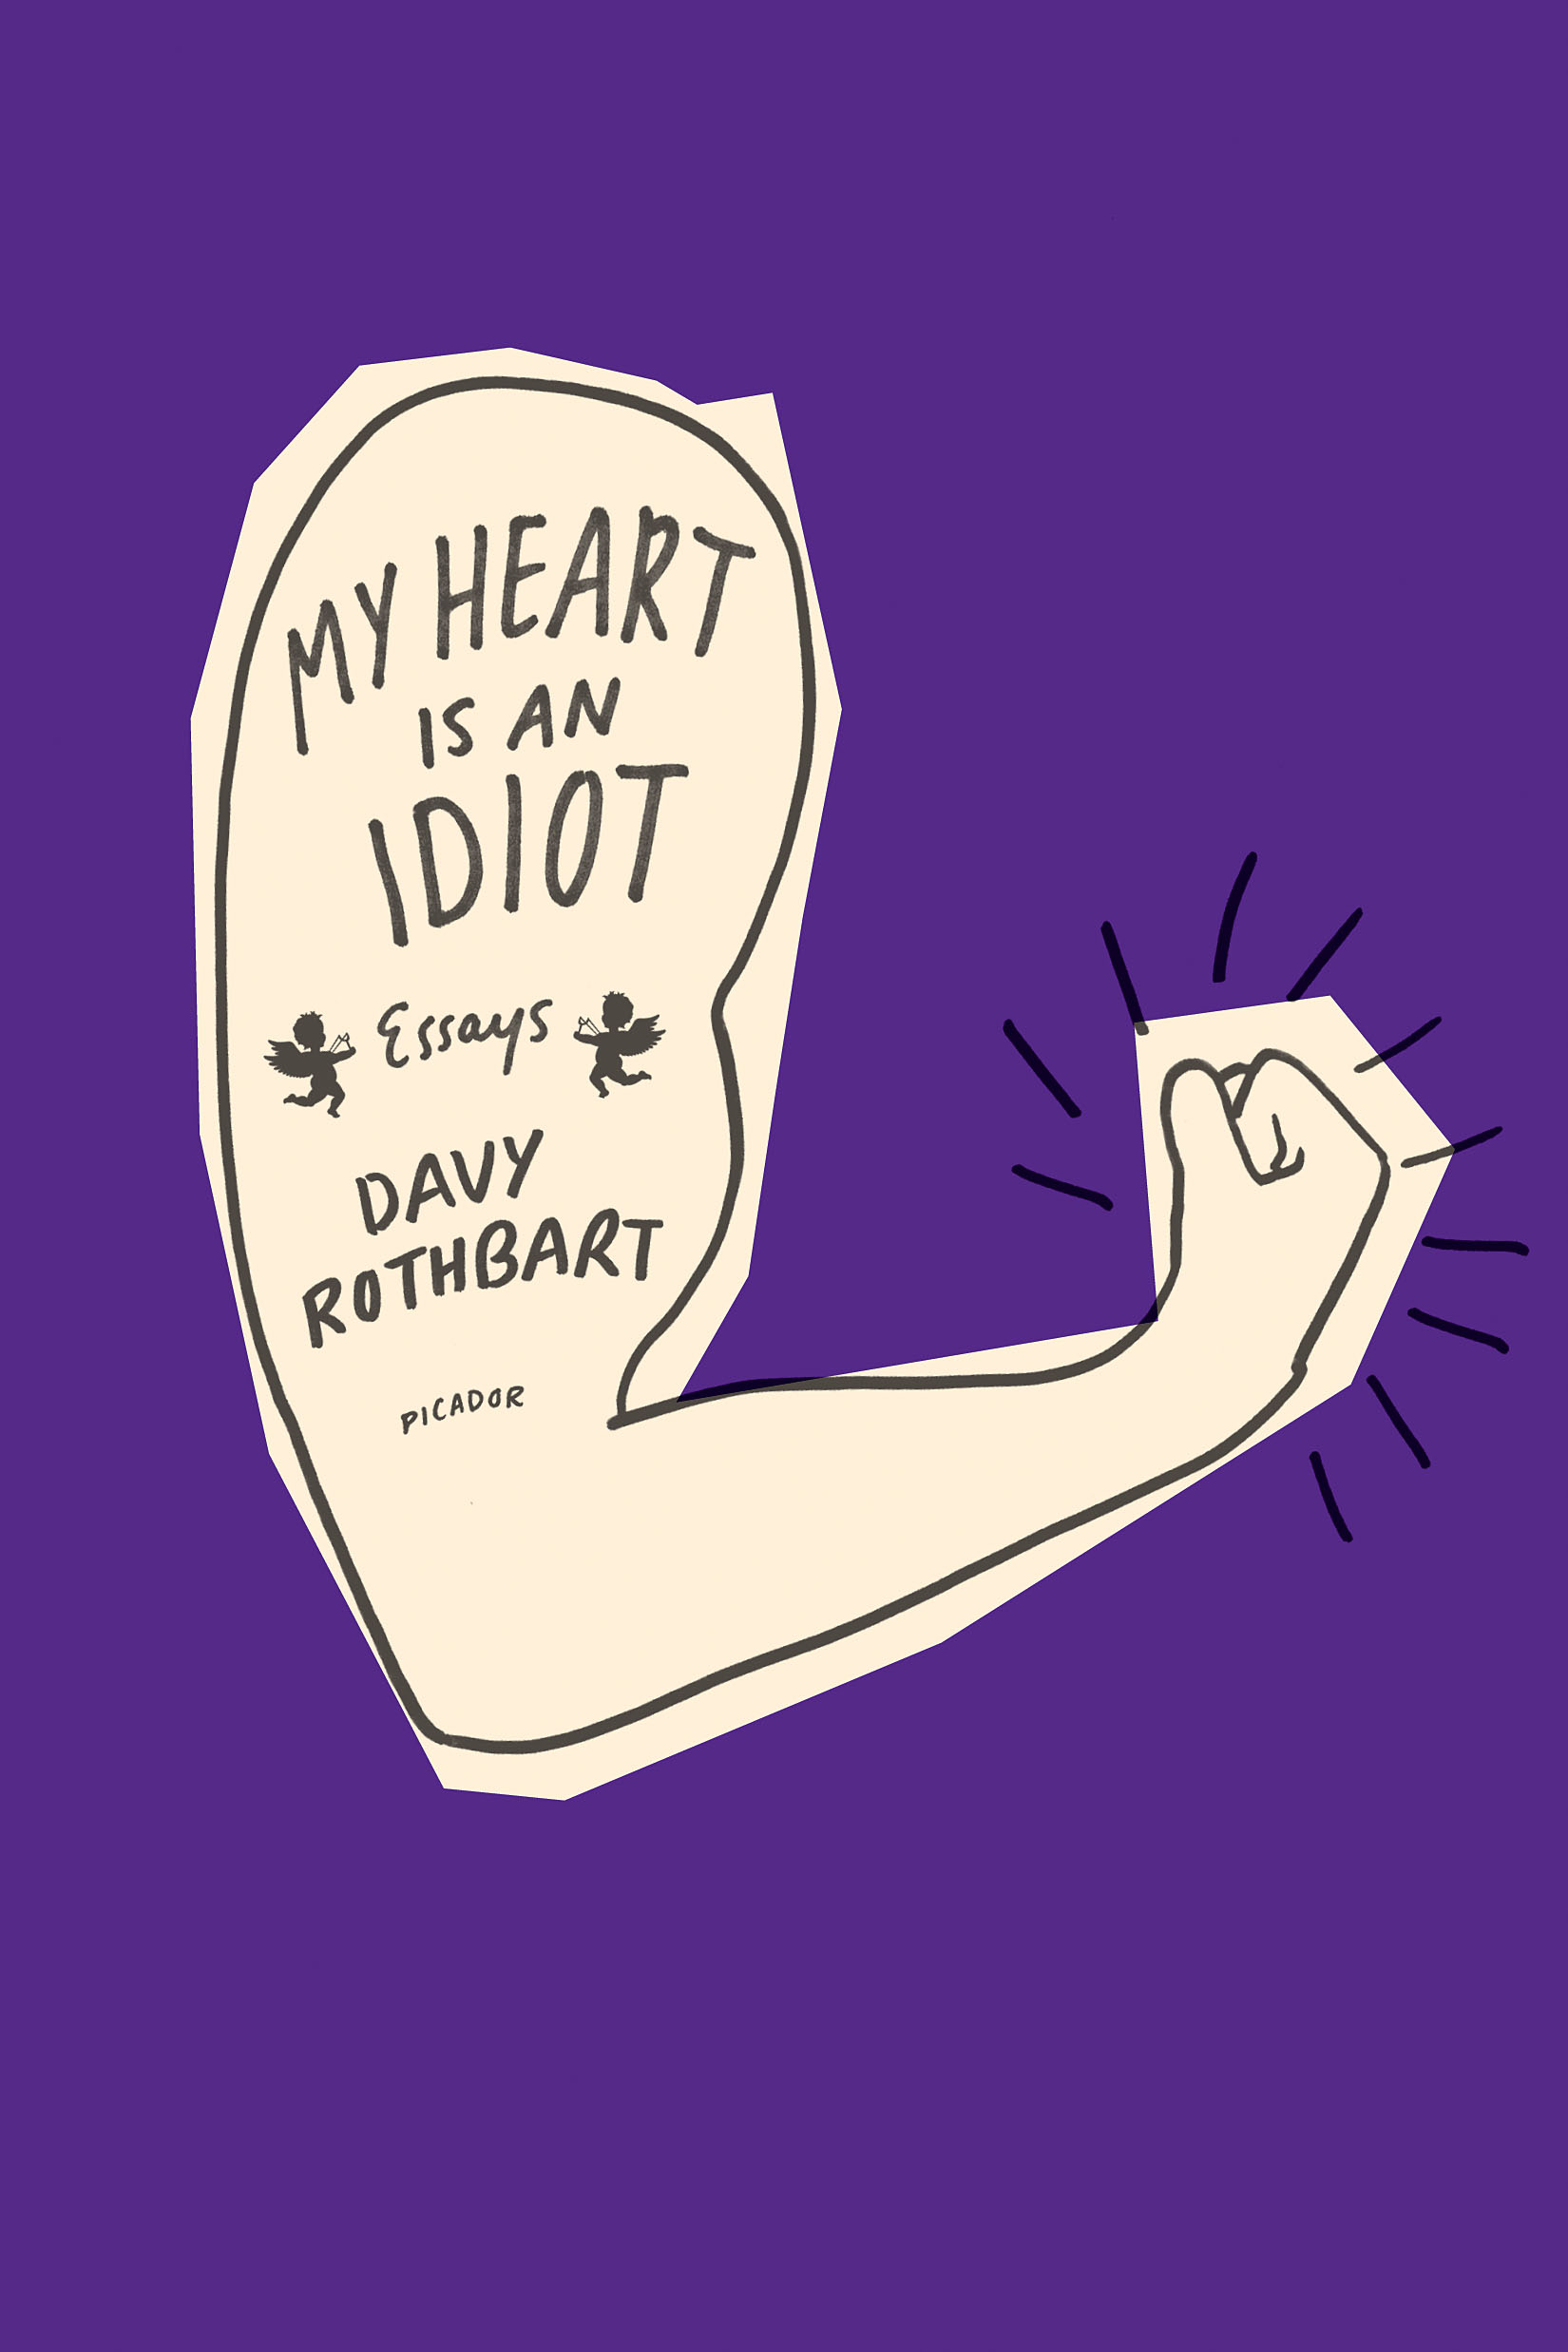 Paperback Launch: My Heart is an Idiot by Davy Rothbart